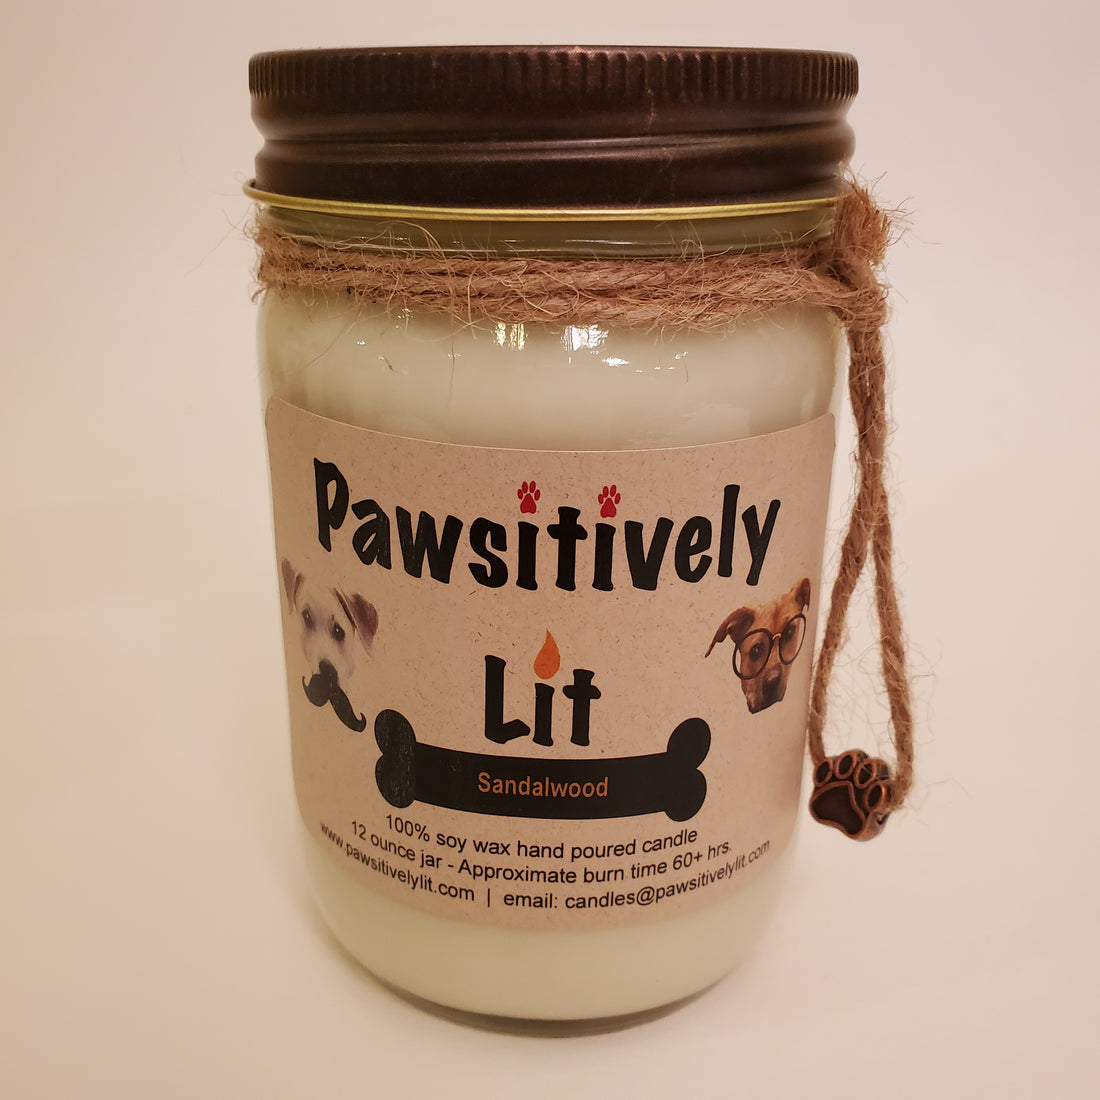 Sandalwood Scented Pawsitively Lit 100% Soy Wax Mason Jar Candle